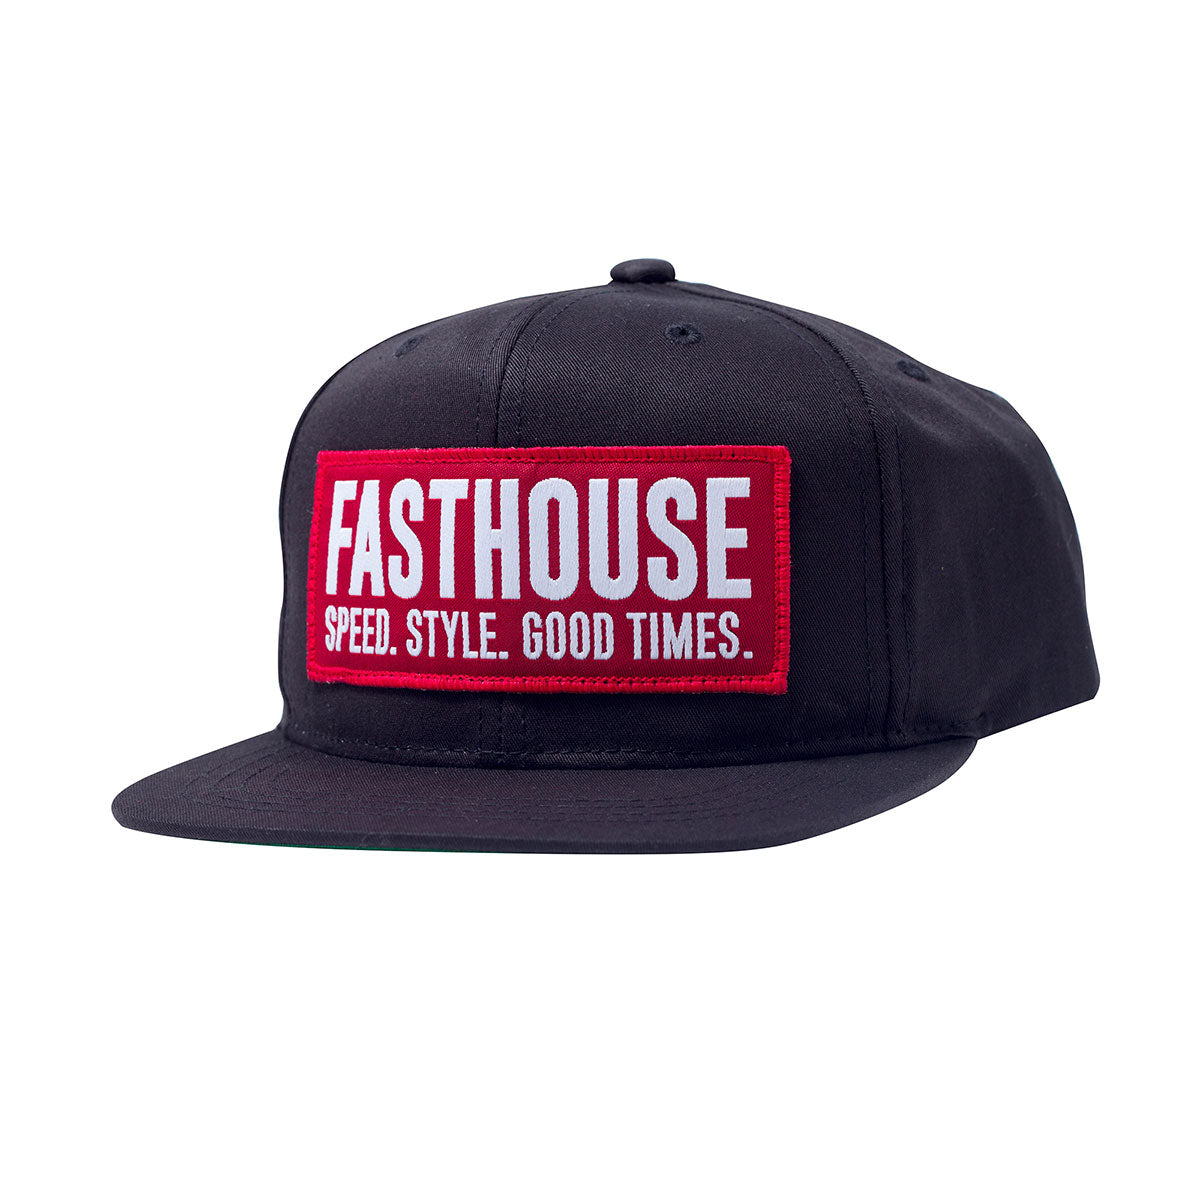 Fasthouse - Blockhouse Youth Hat - Black